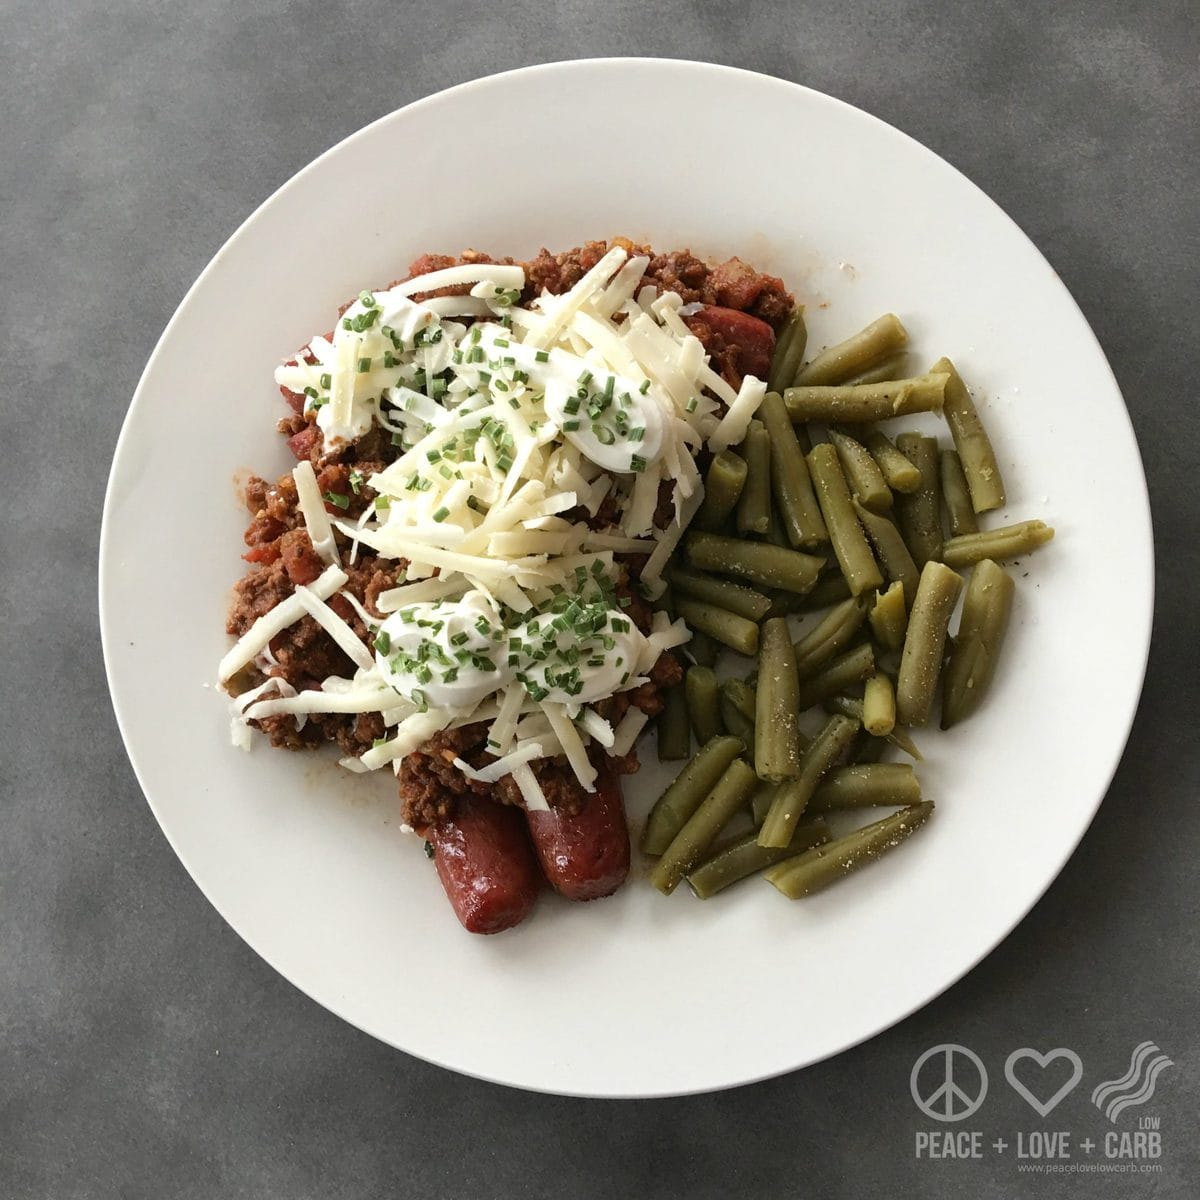 Low Carb and Gluten Free Chili Dogs and Green Beans | Peace Love and Low Carb